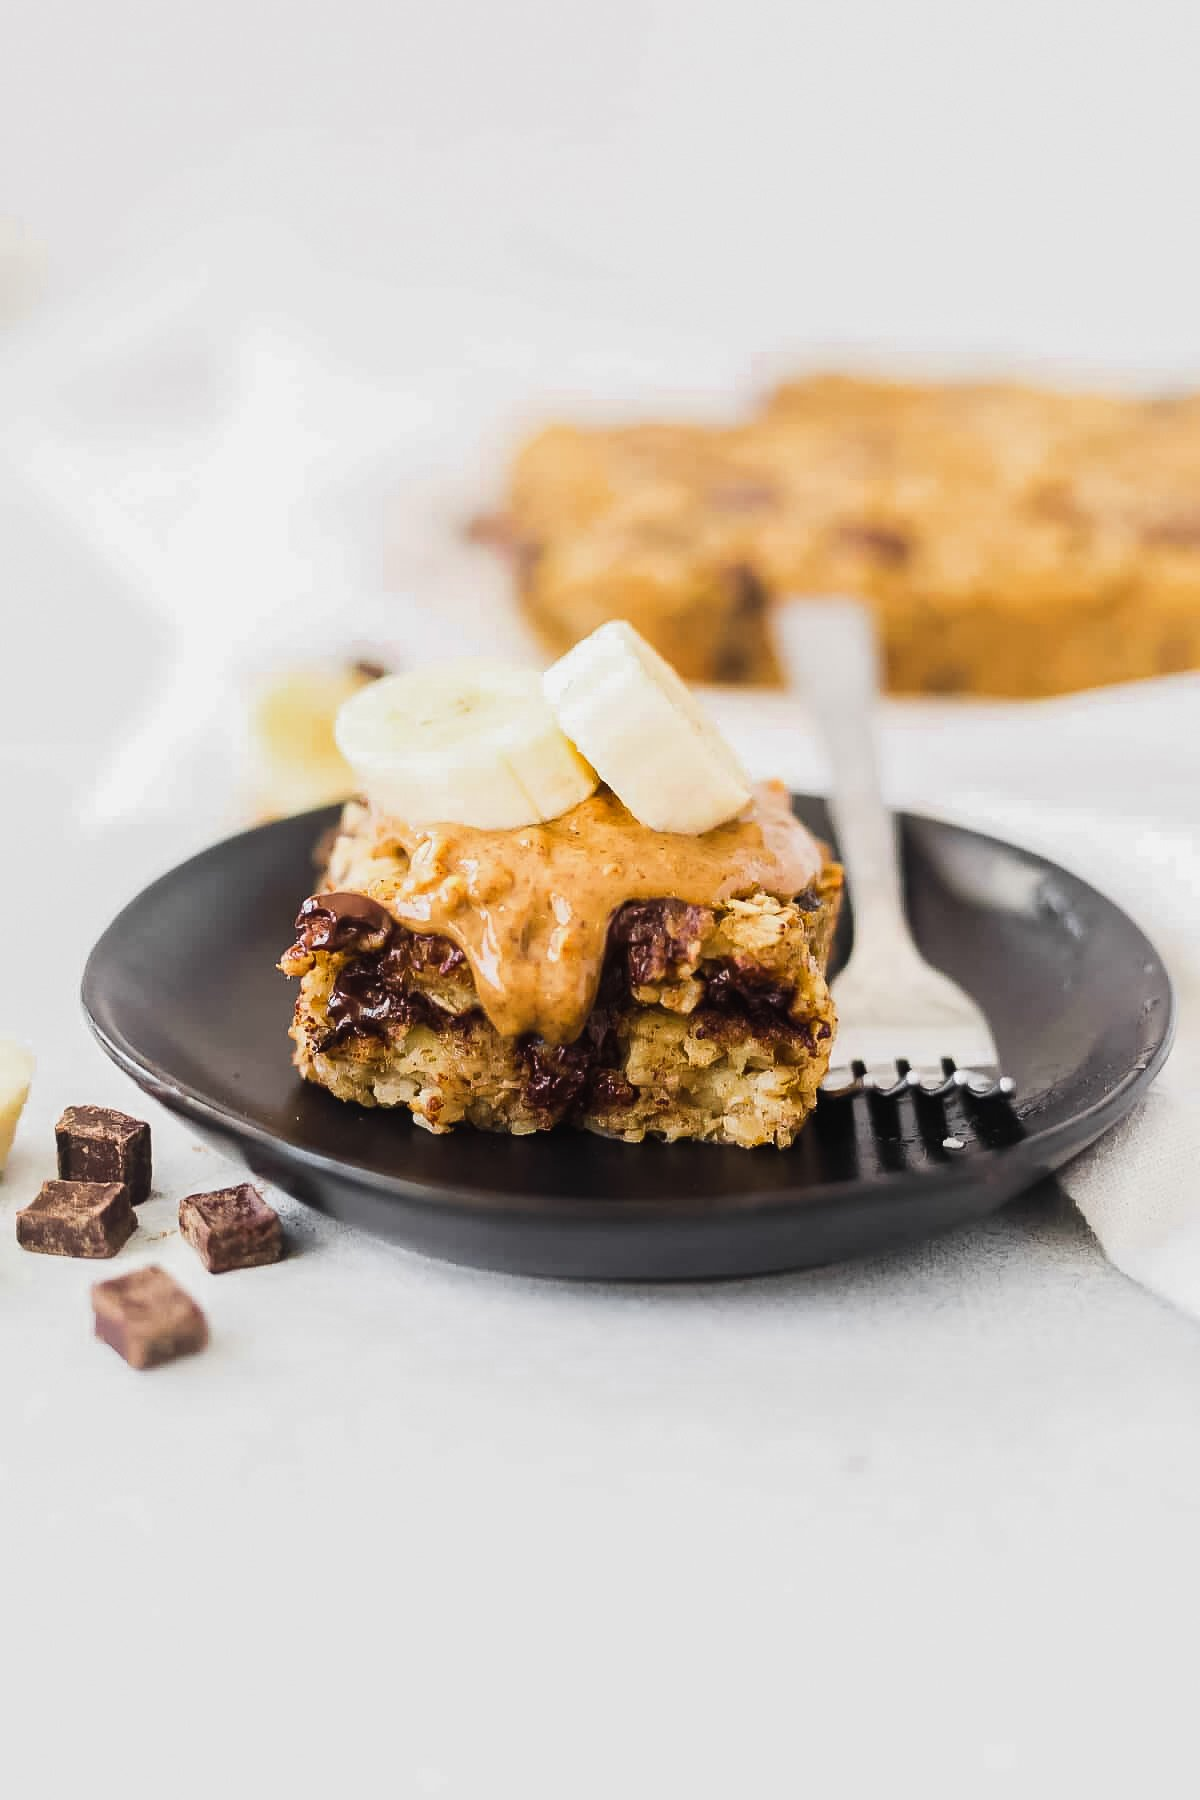 a slice of banana baked oatmeal on a black dessert dish topped with almond butter and banana and served with a fork